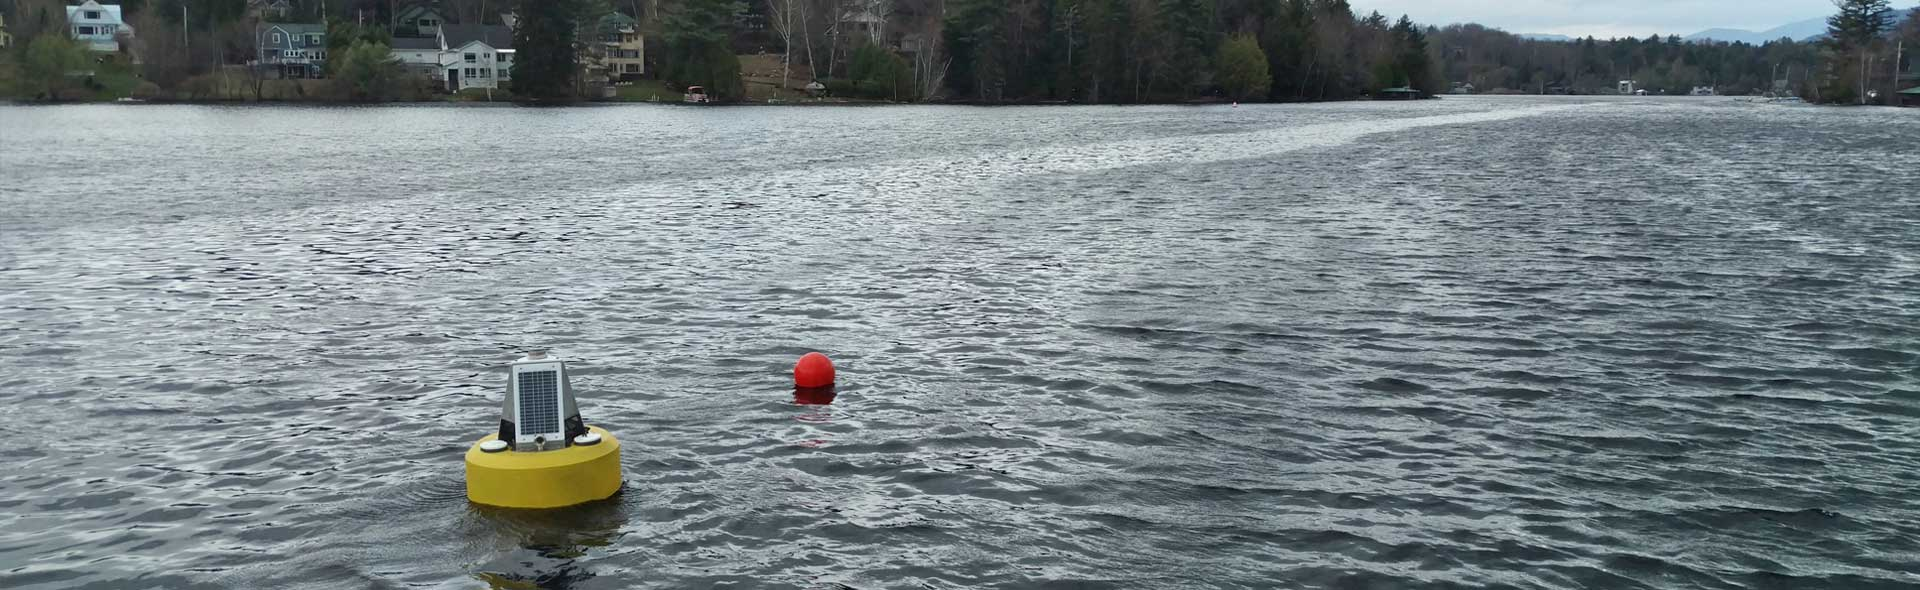 Limnology buoy